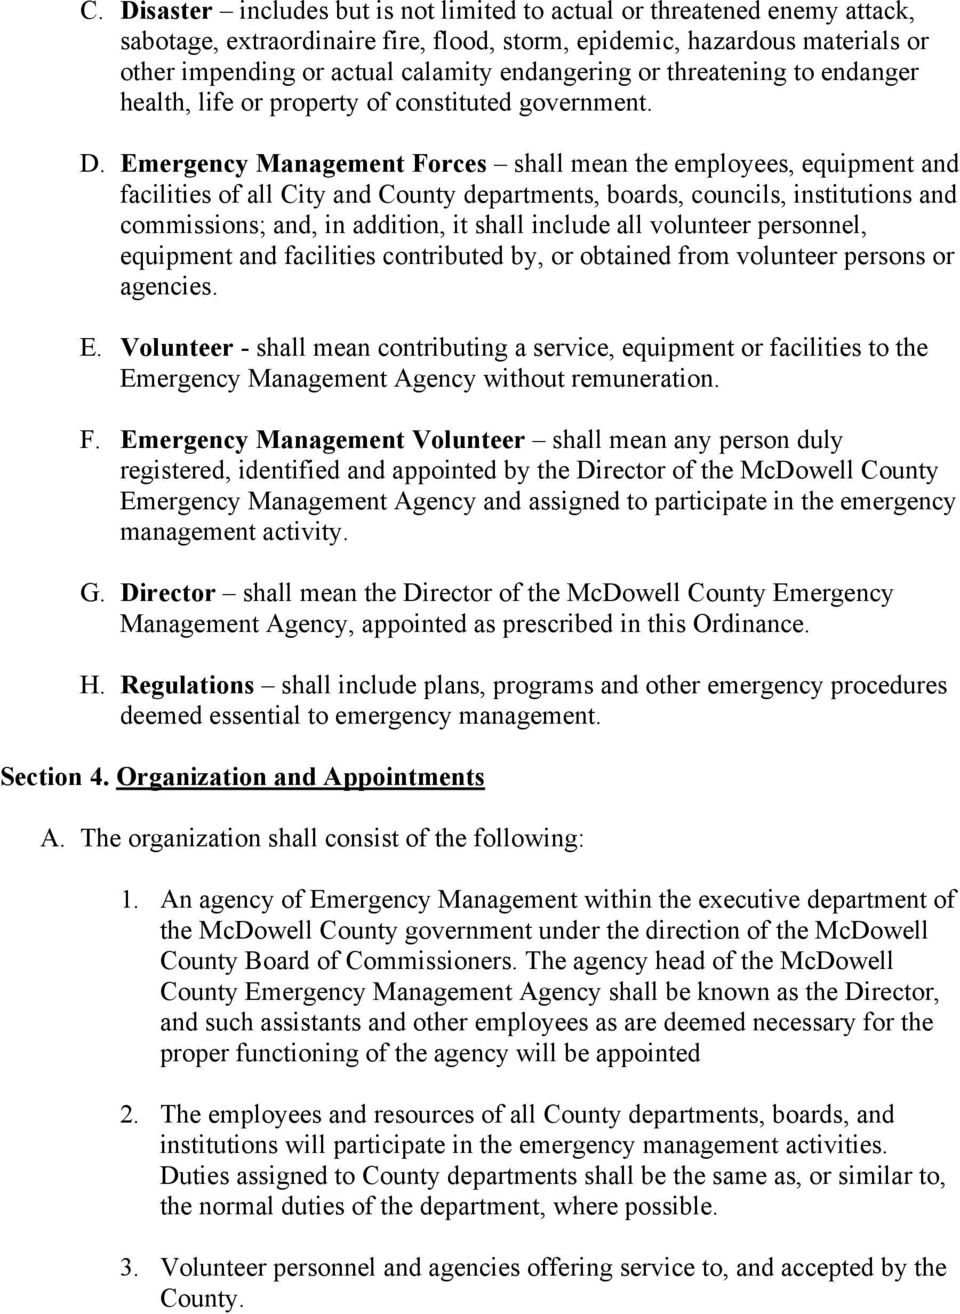 Emergency Management Forces shall mean the employees, equipment and facilities of all City and County departments, boards, councils, institutions and commissions; and, in addition, it shall include